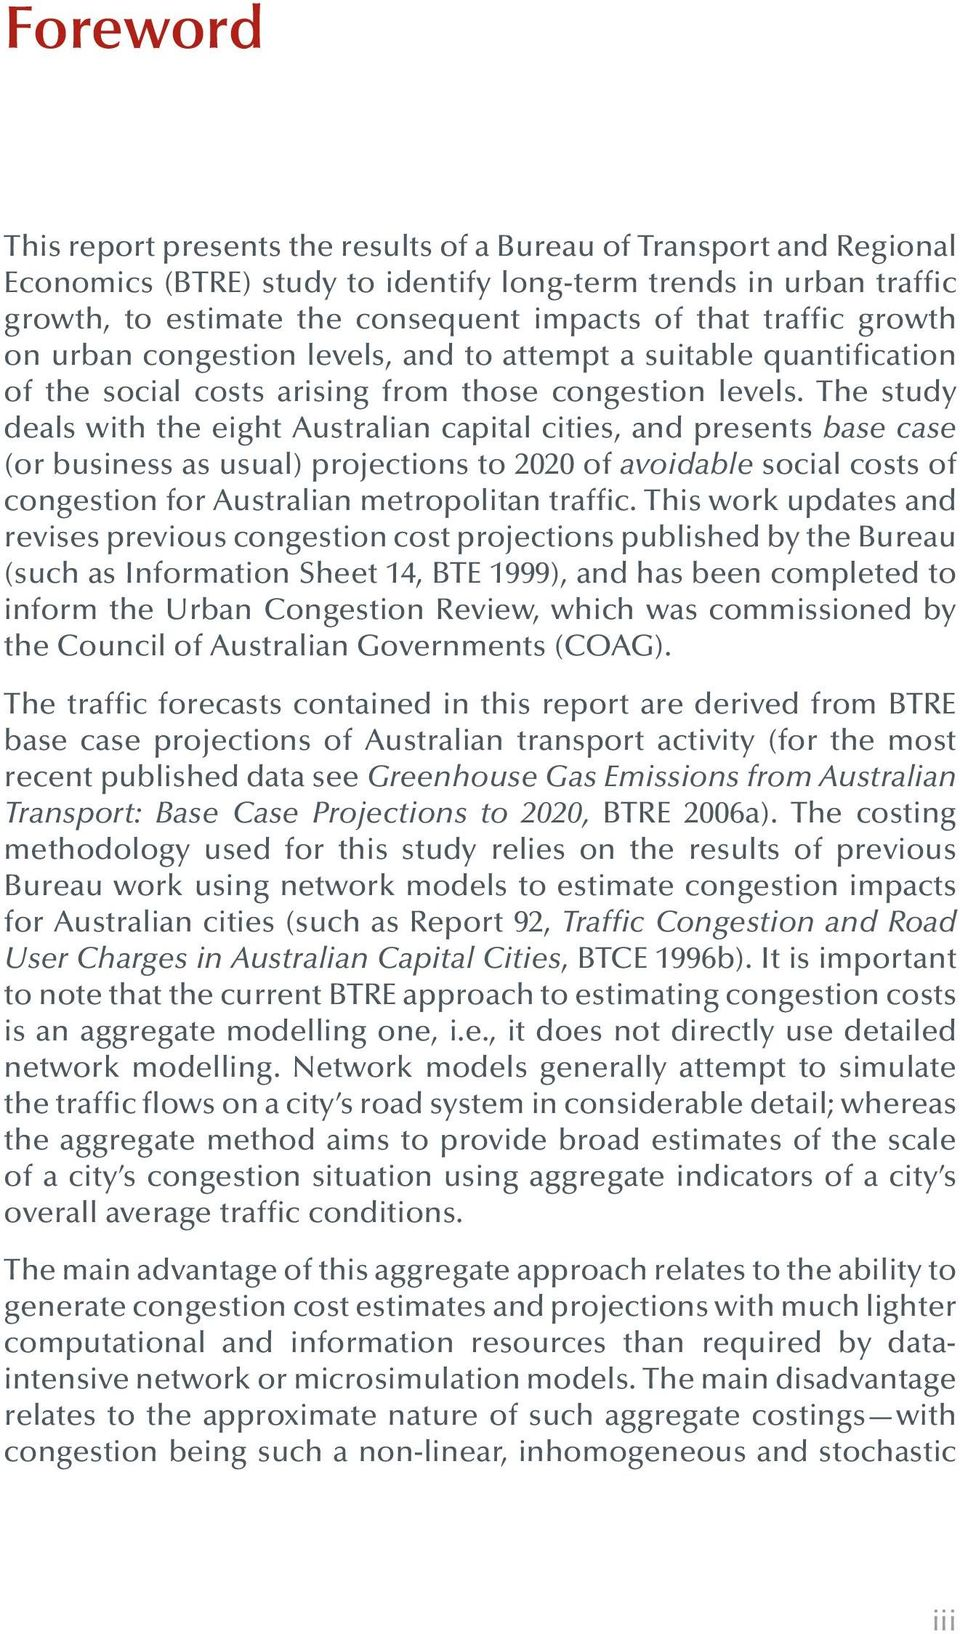 The study deals with the eight Australian capital cities, and presents base case (or business as usual) projections to 2020 of avoidable social costs of congestion for Australian metropolitan traffic.